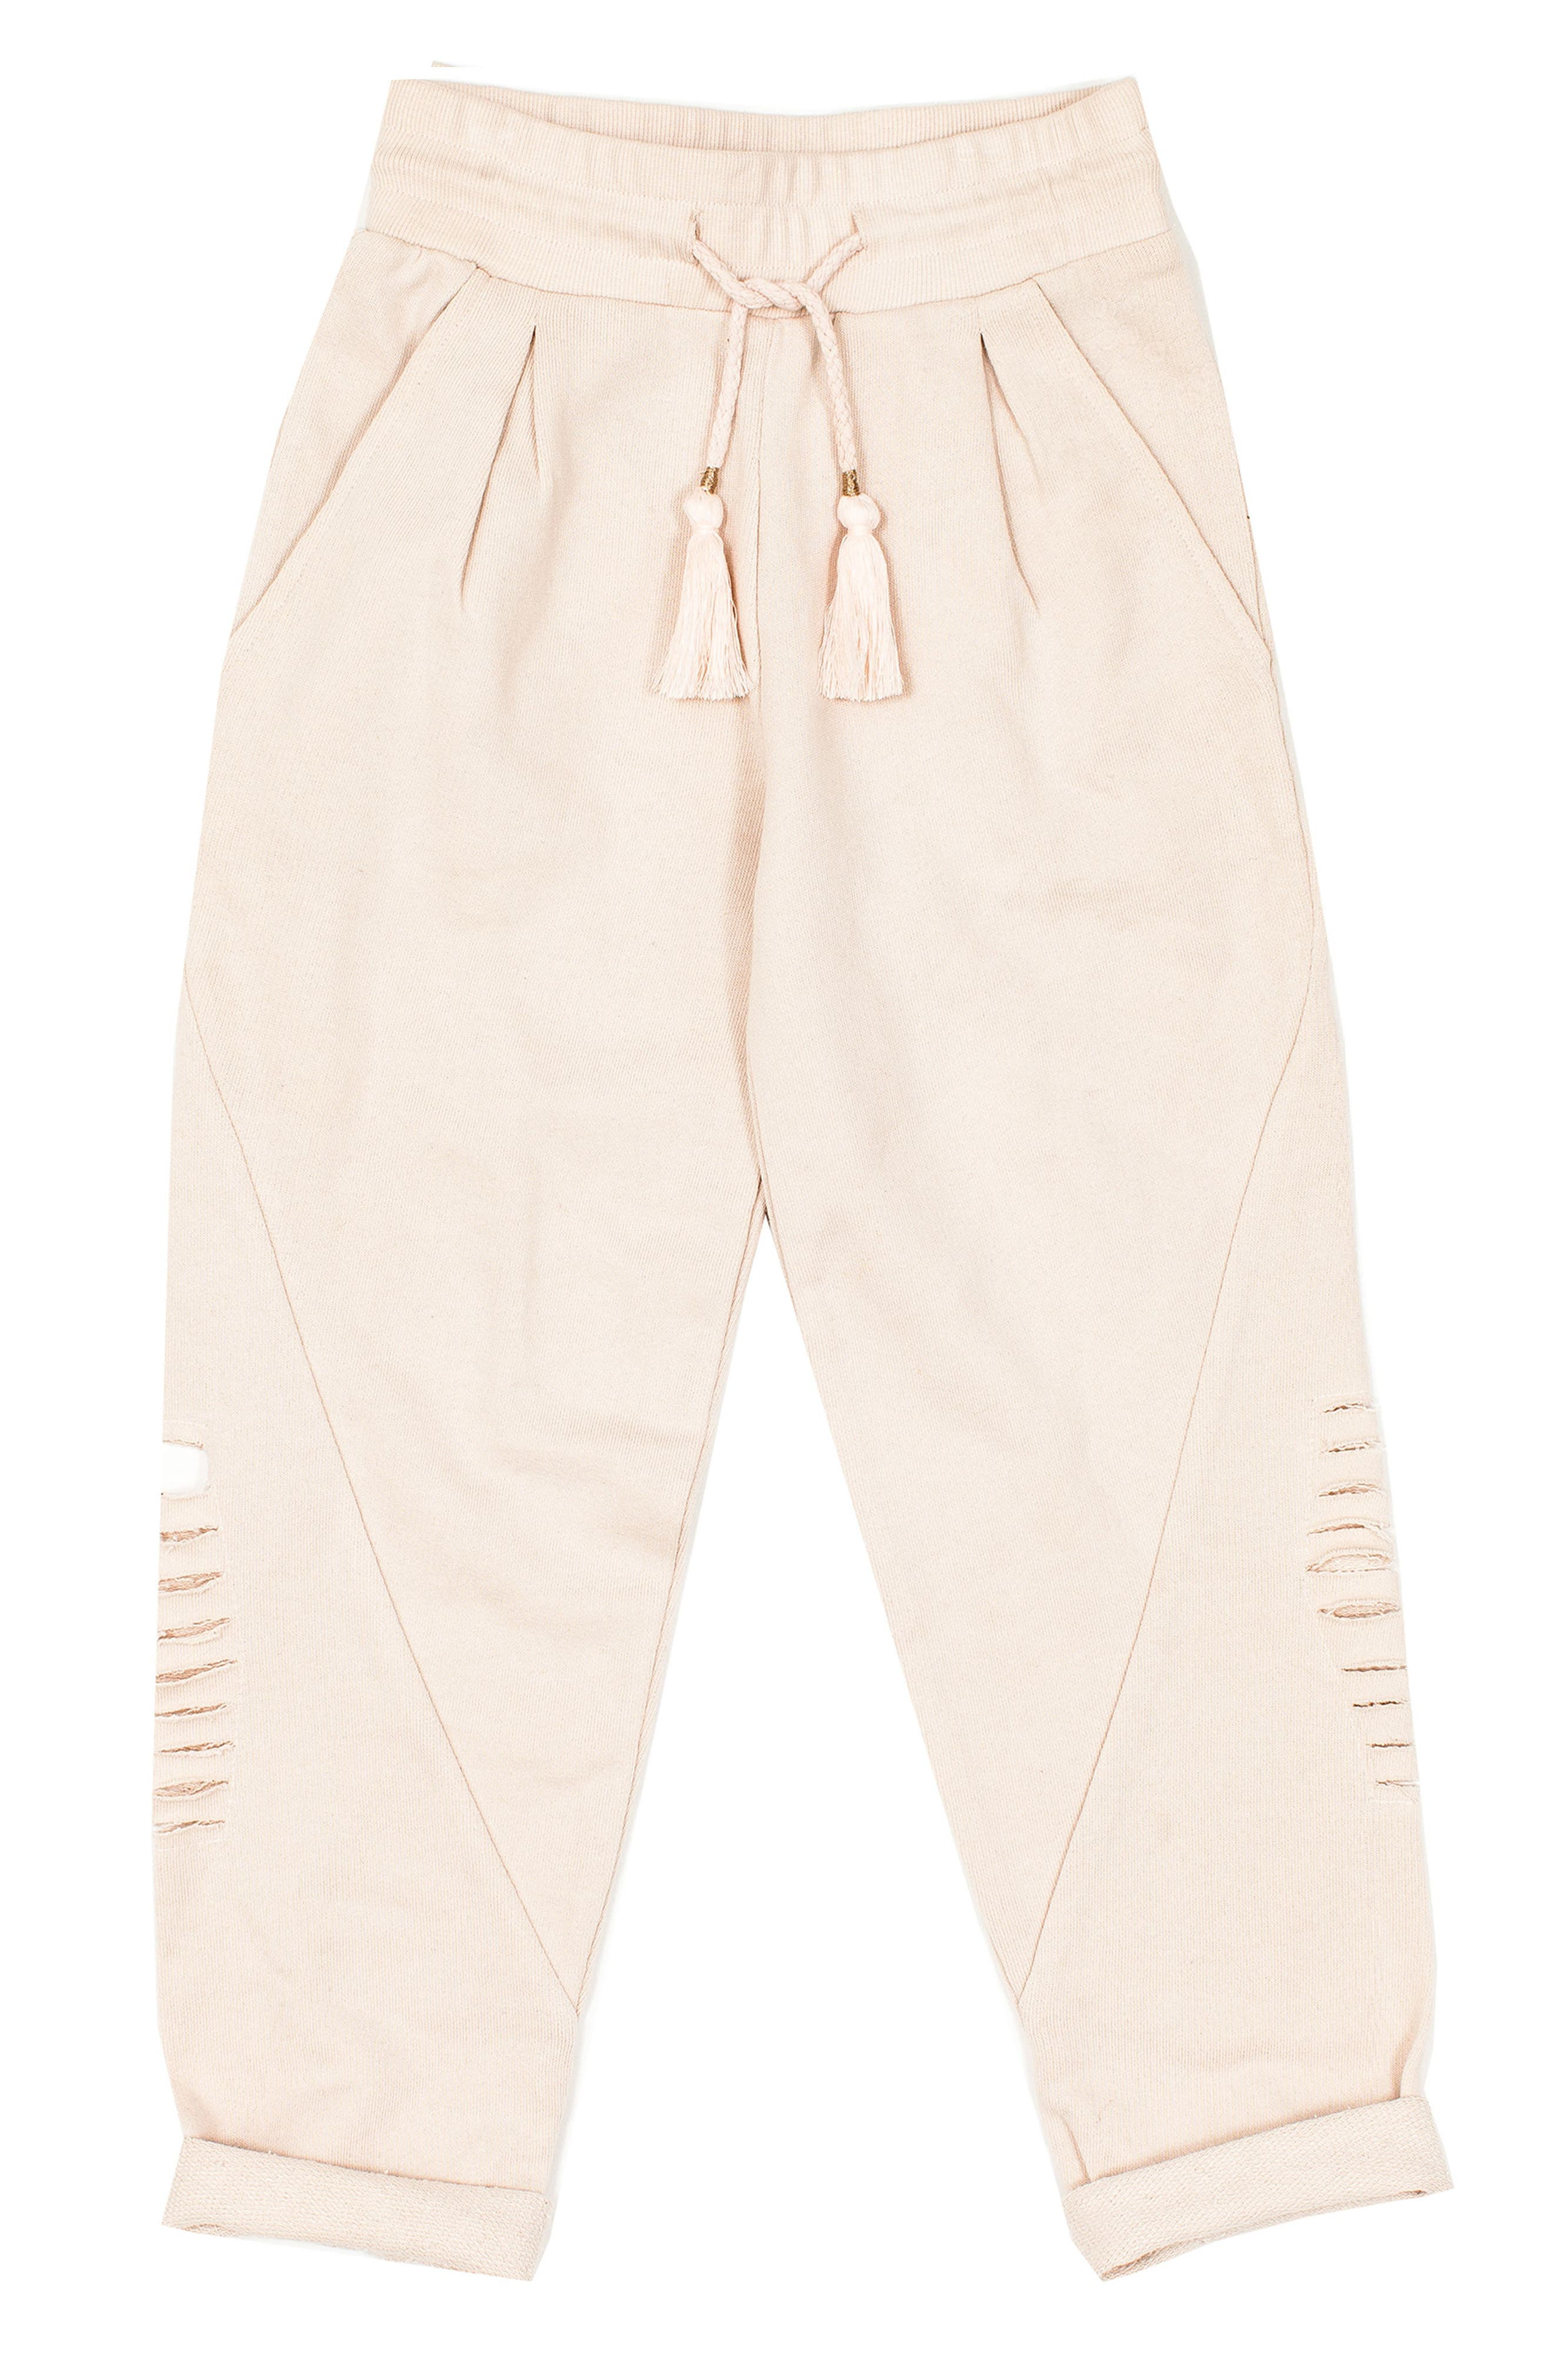 Alchemy Distressed Sweatpants,                             Main thumbnail 1, color,                             Stardust